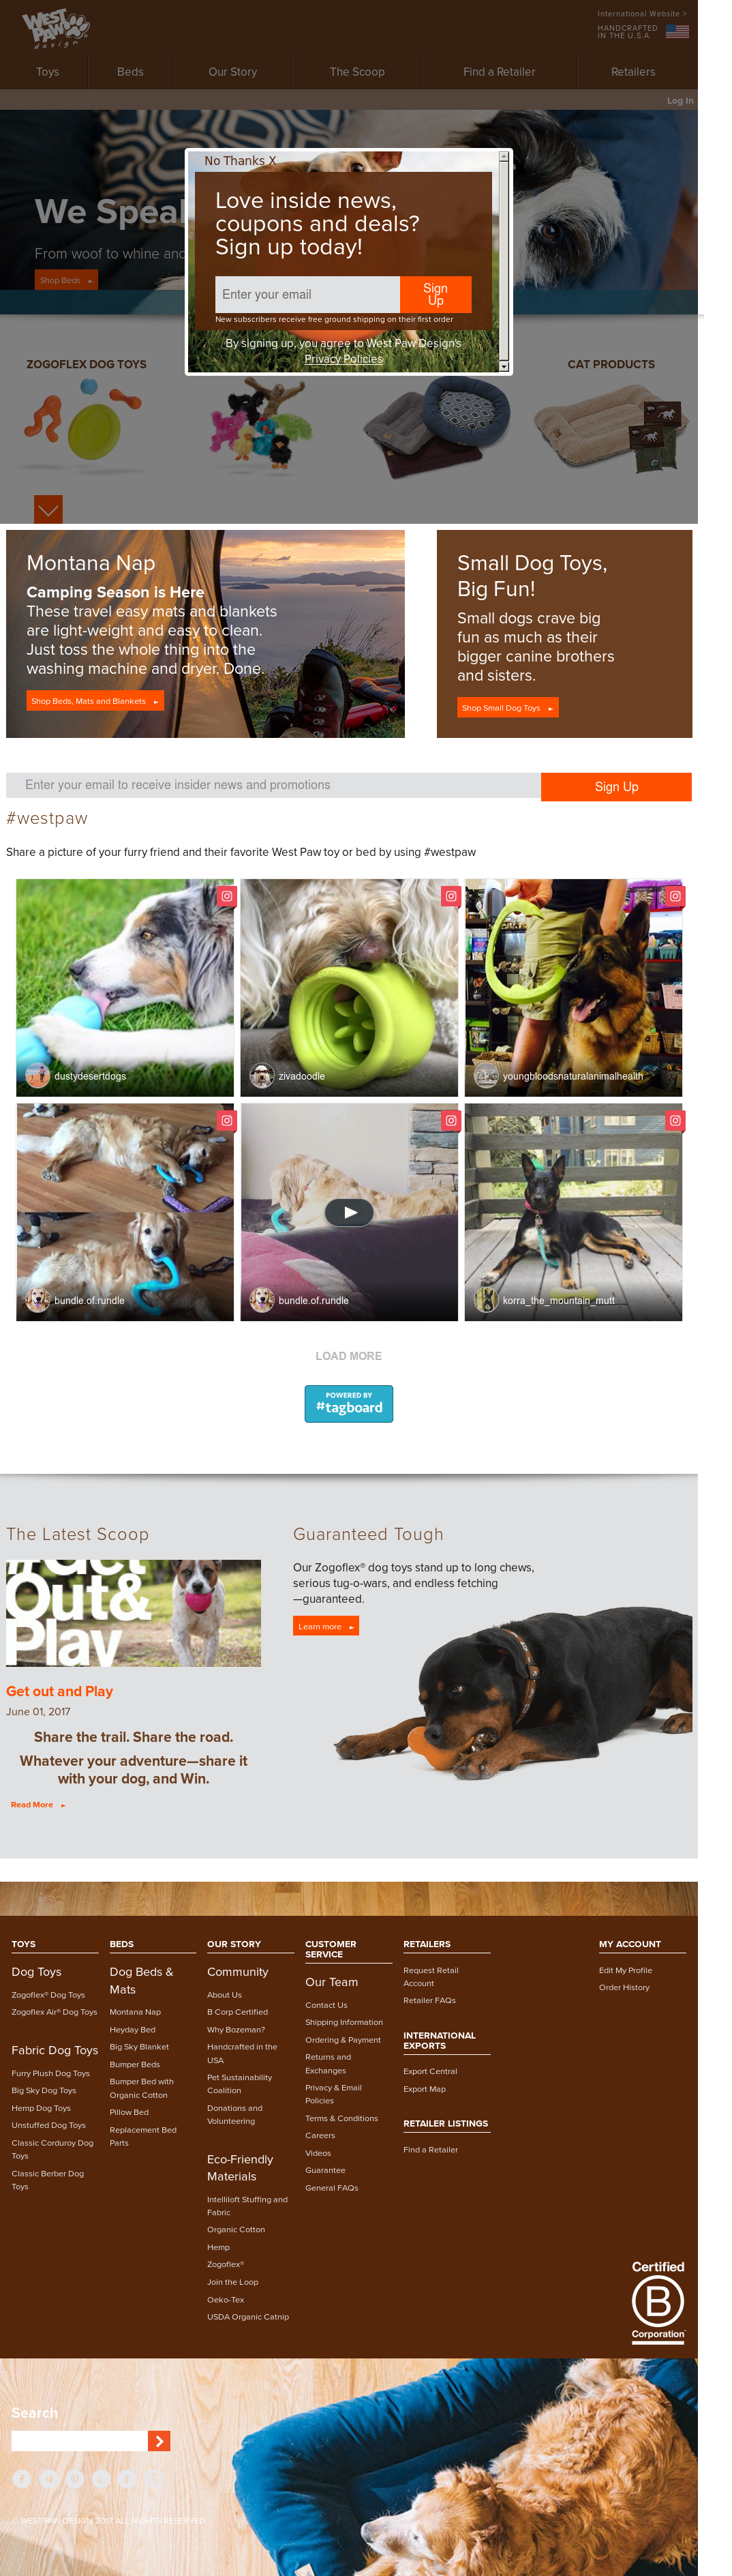 West Paw Design S Latest News Blogs Press Releases Videos